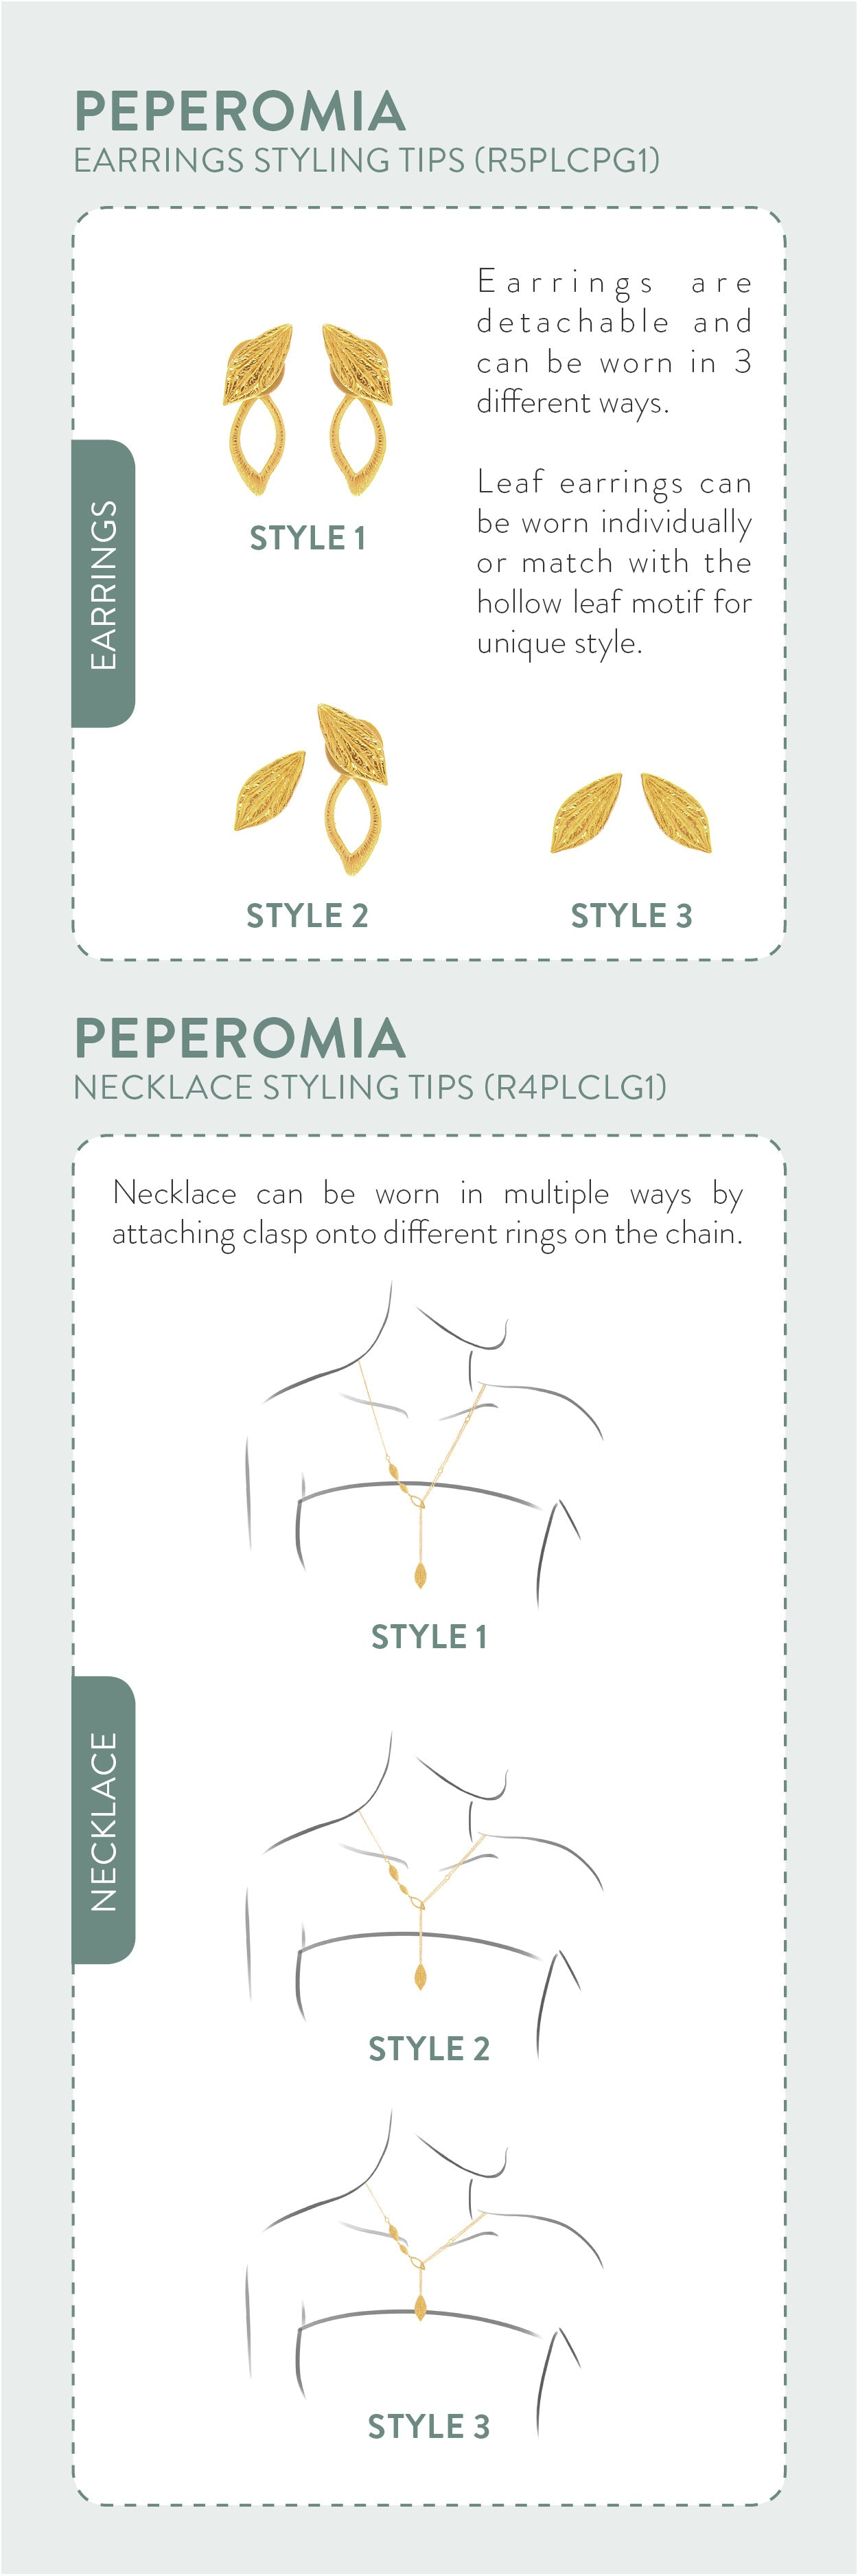 blog-styleguide-peperomia-collection